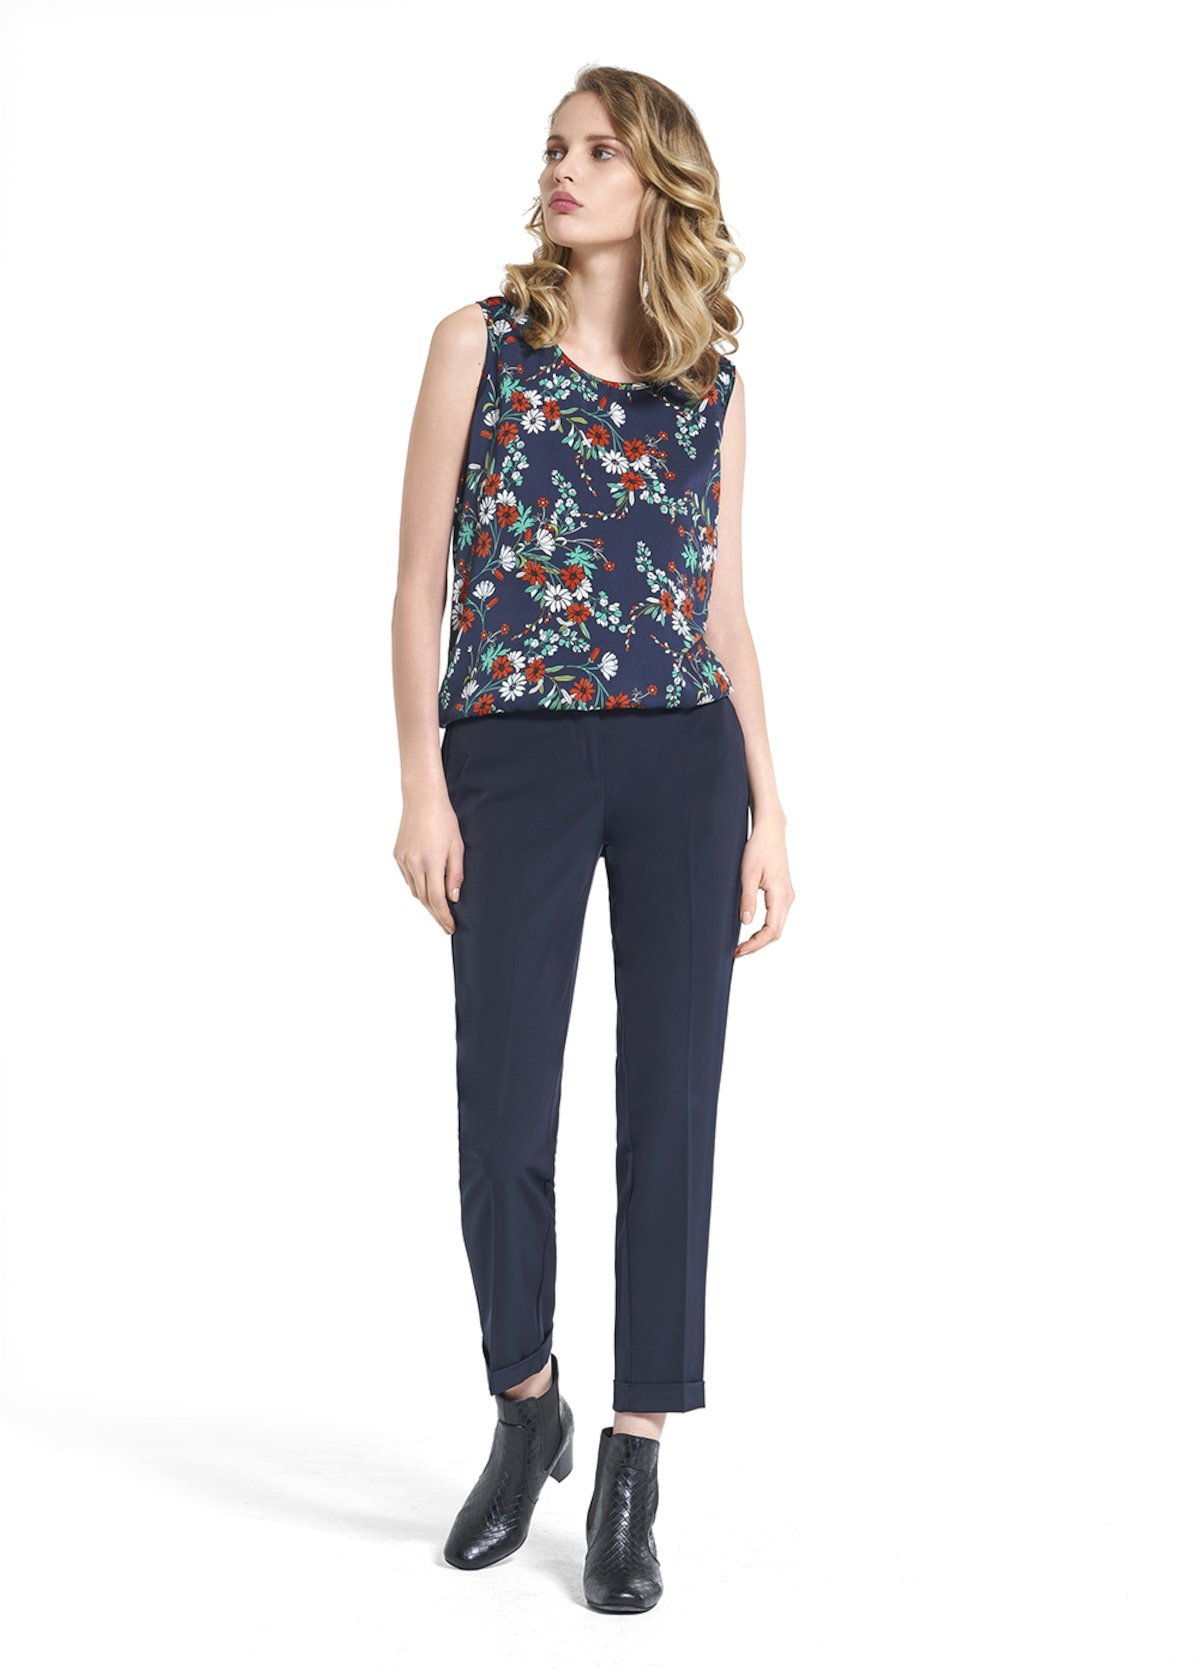 Top Ted with romantic floral pattern - Blue / White Fantasia - Woman